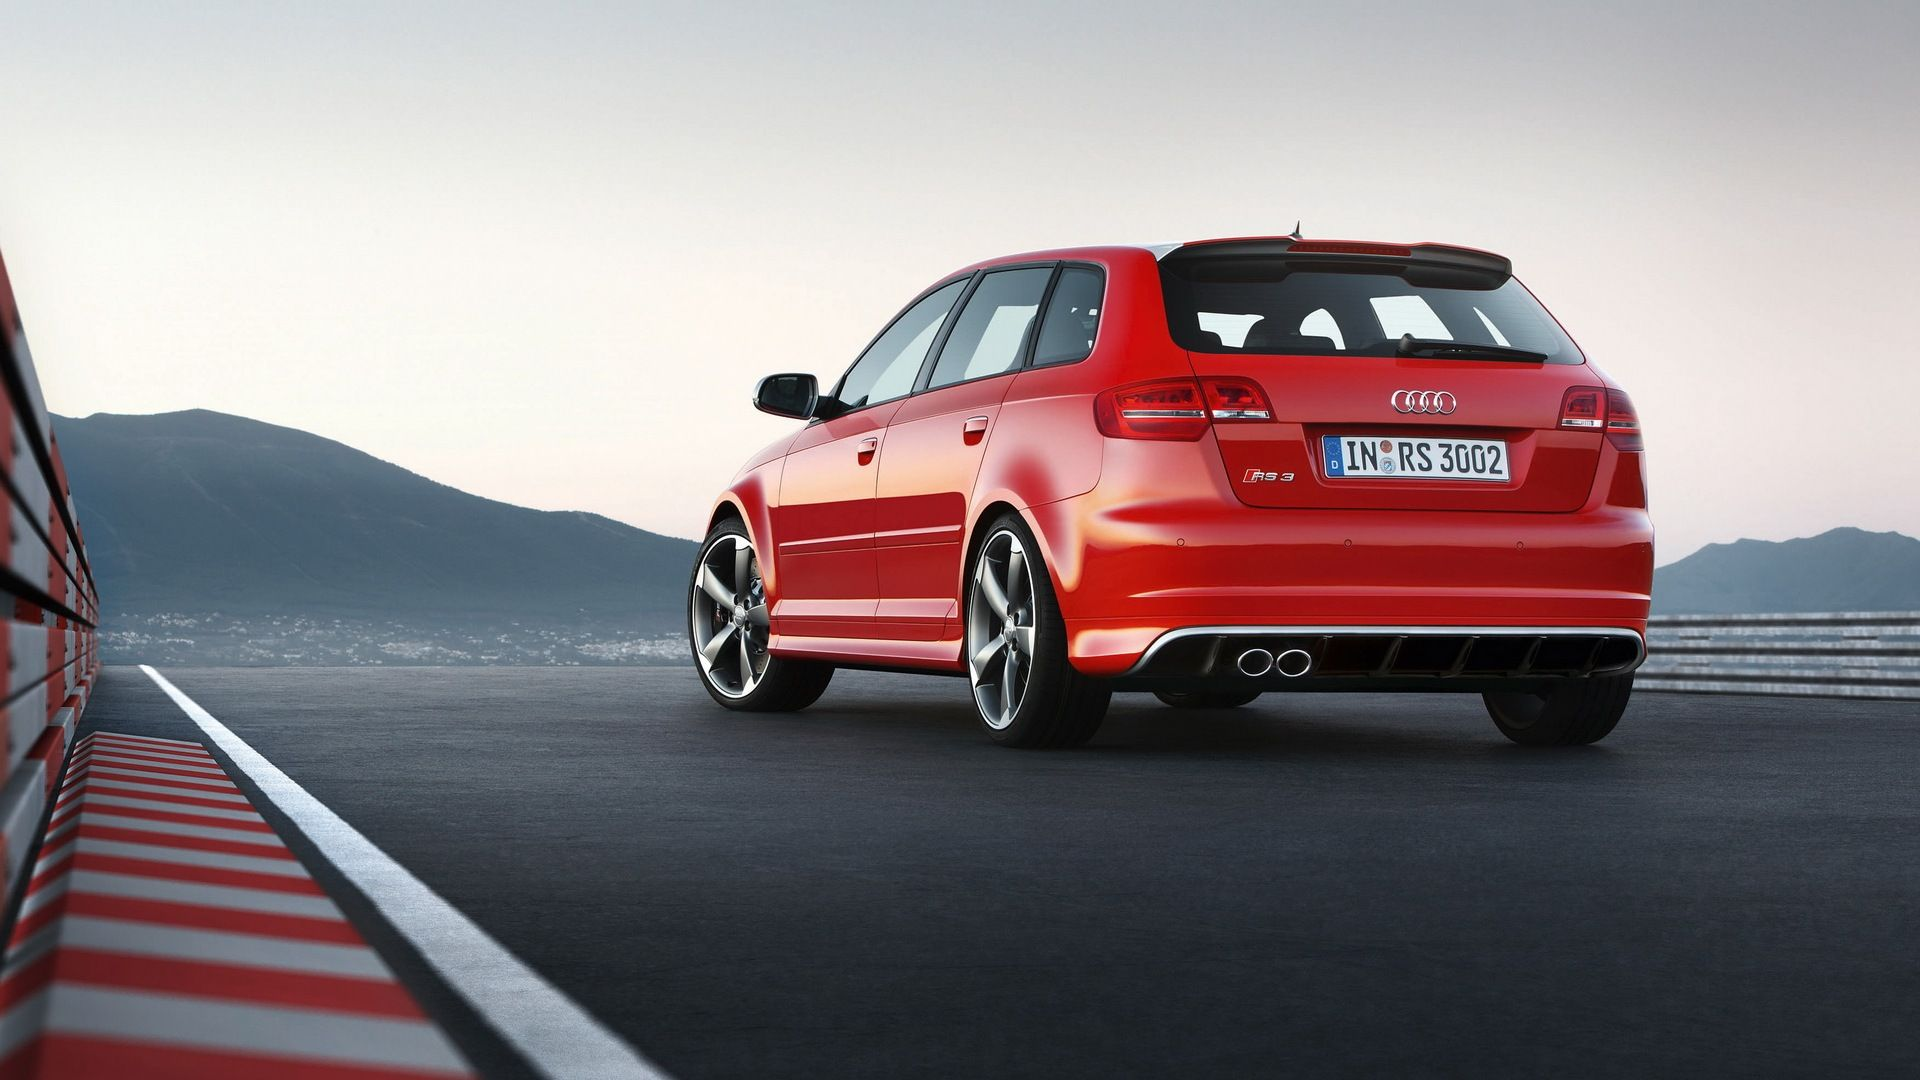 Fantastic Audi RS3 Wallpapers 47381 1920x1080 px ~ HDWallSource